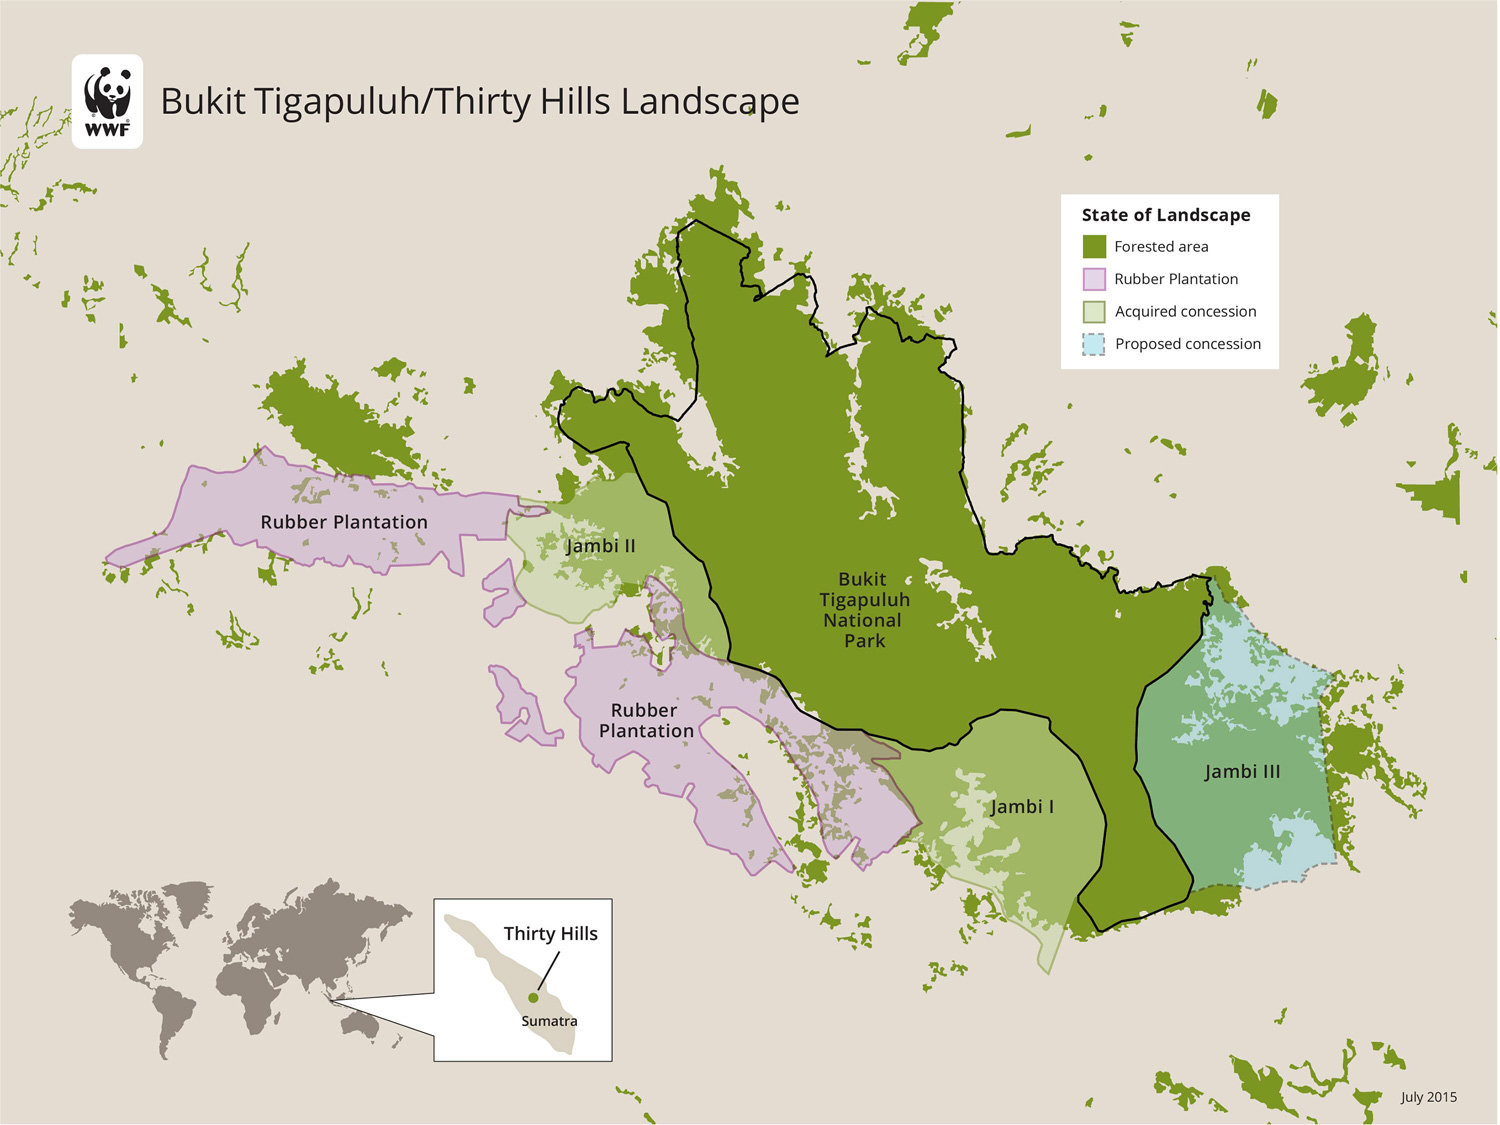 WWF map showing the new ecosystem restoration concession